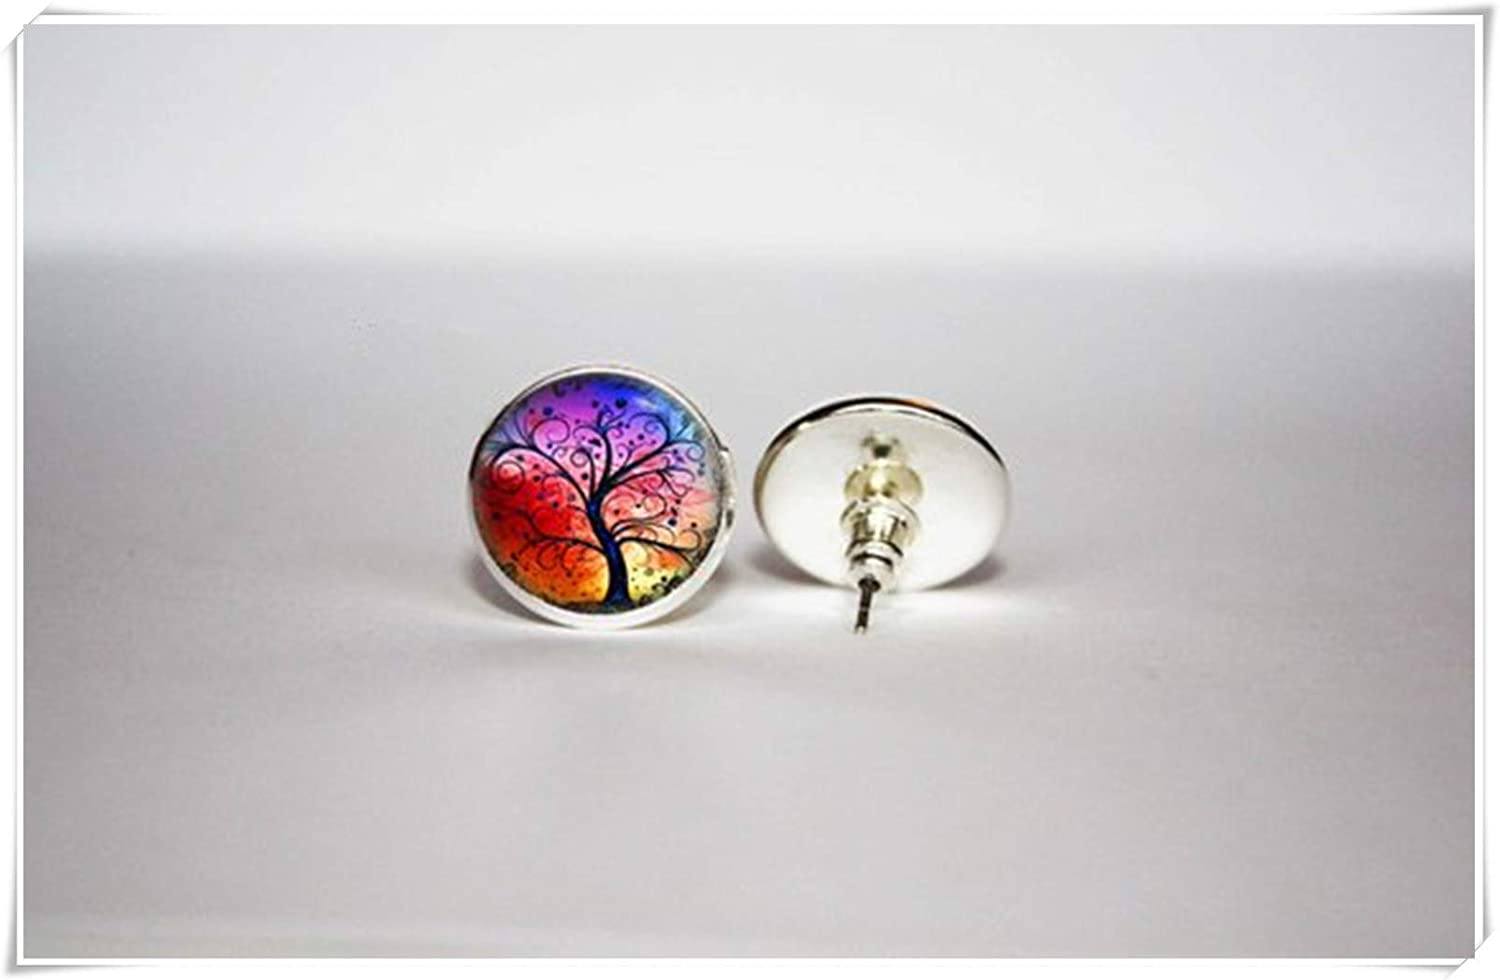 Hand-Made. Tree of Life Stud Earrings,Exquisite Ornaments beautiful beautiful girl Rainbow Tree of Life Earrings Dome Glass Jewelry